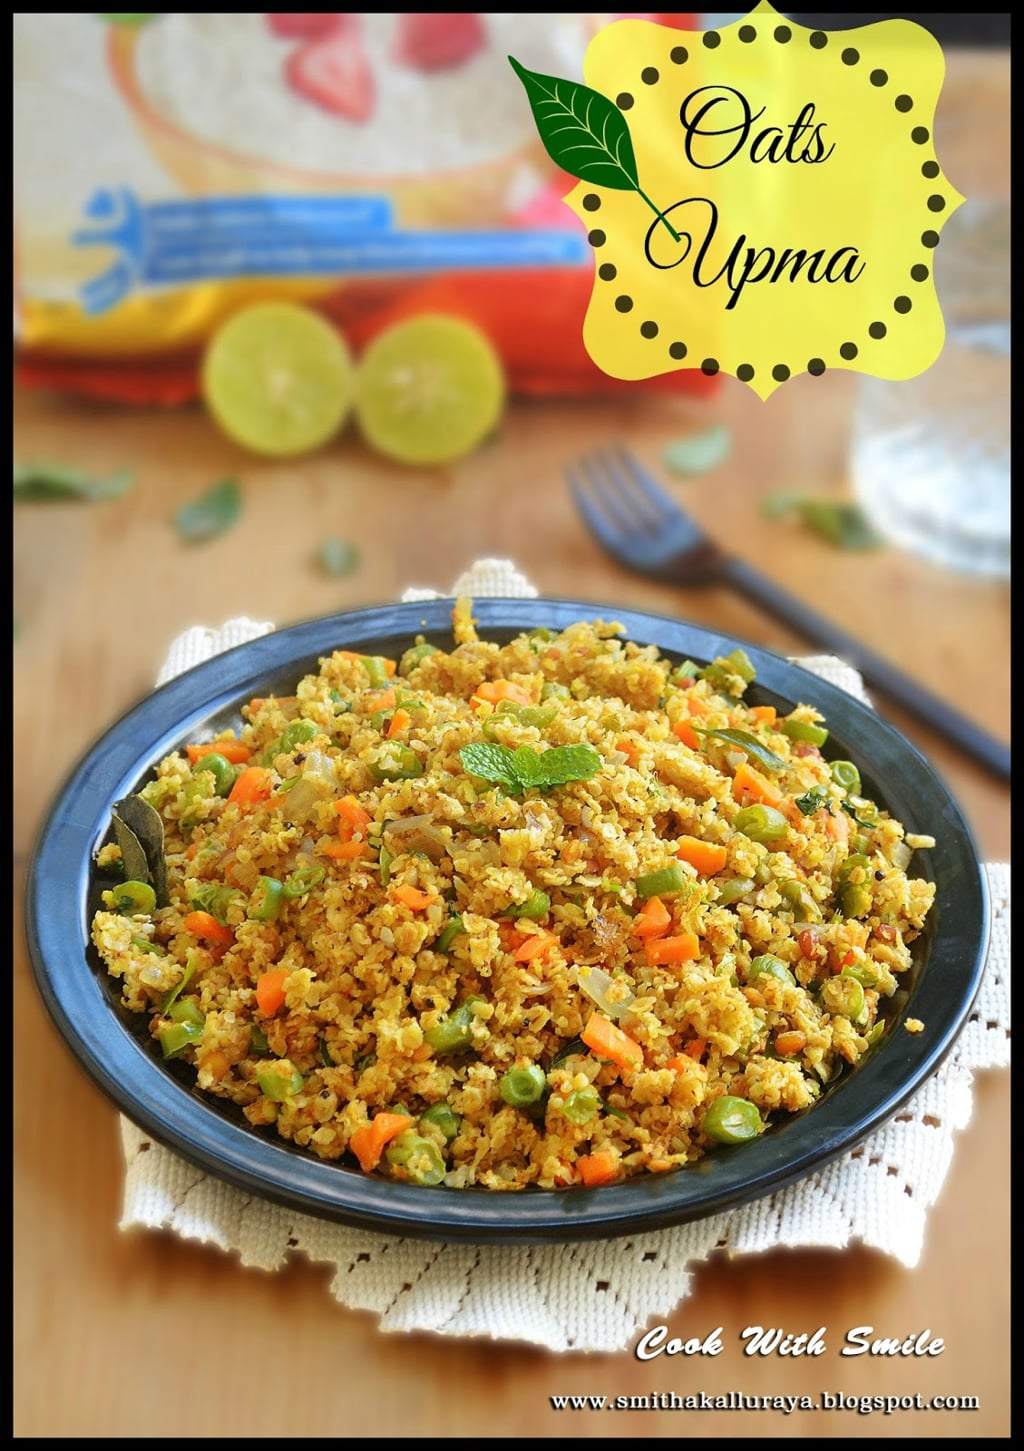 INSTANT VEGETABLE OATS UPMA